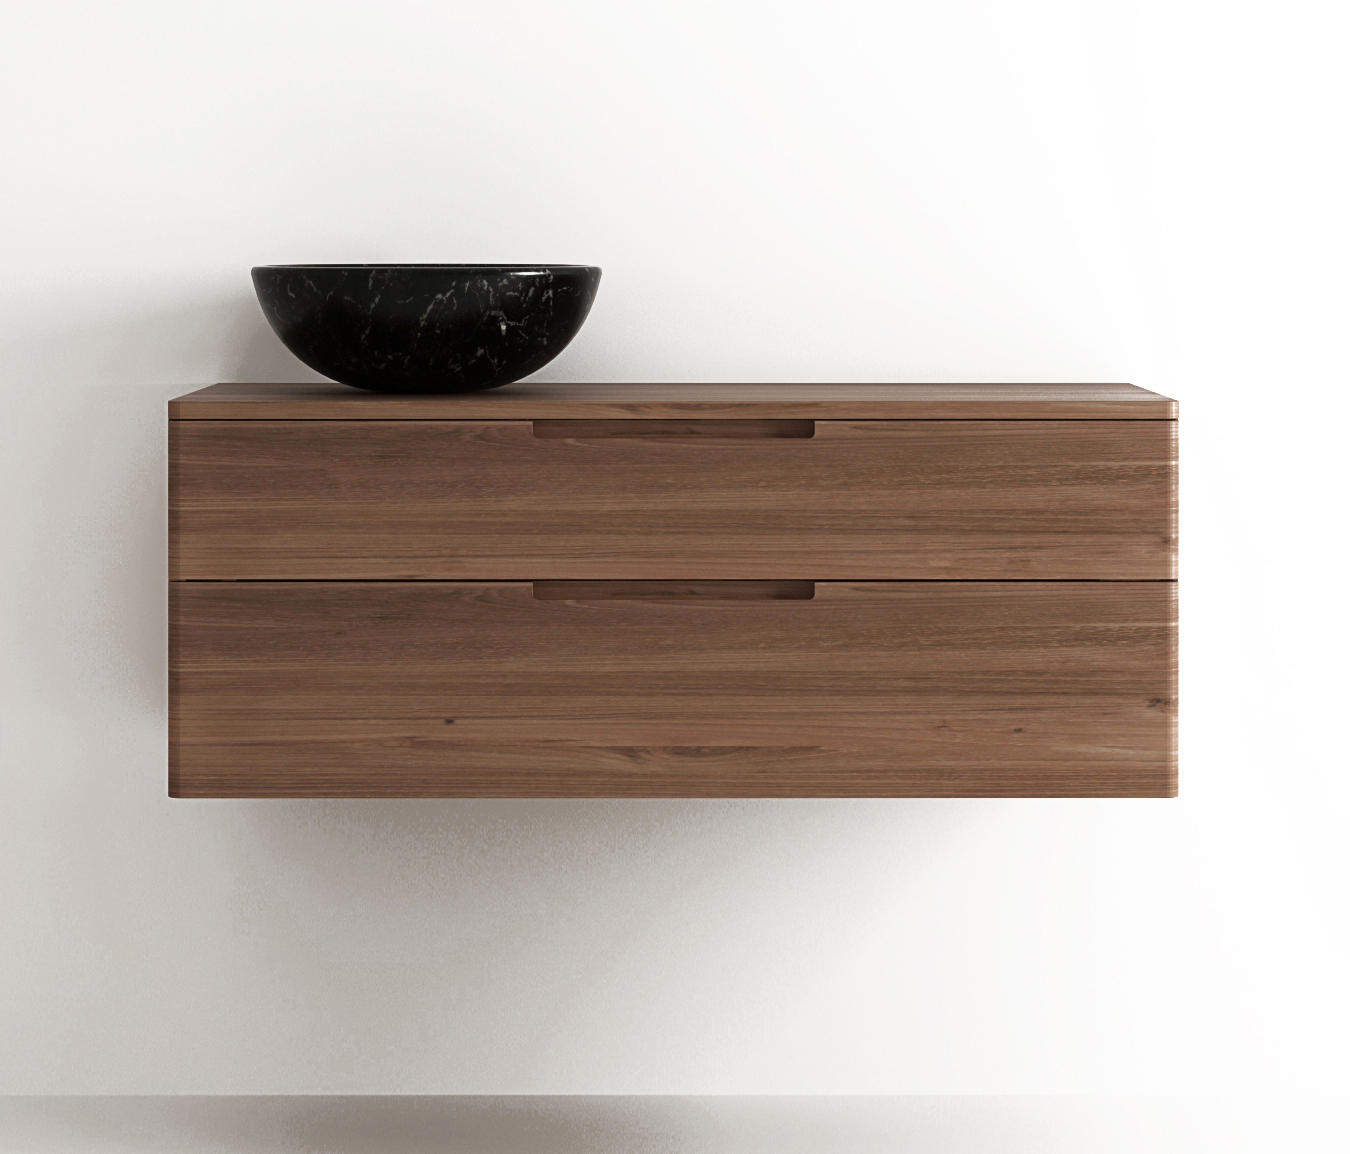 Baker HANGING BASIN 2 DRAWERS By Karpenter | Wall Cabinets ...